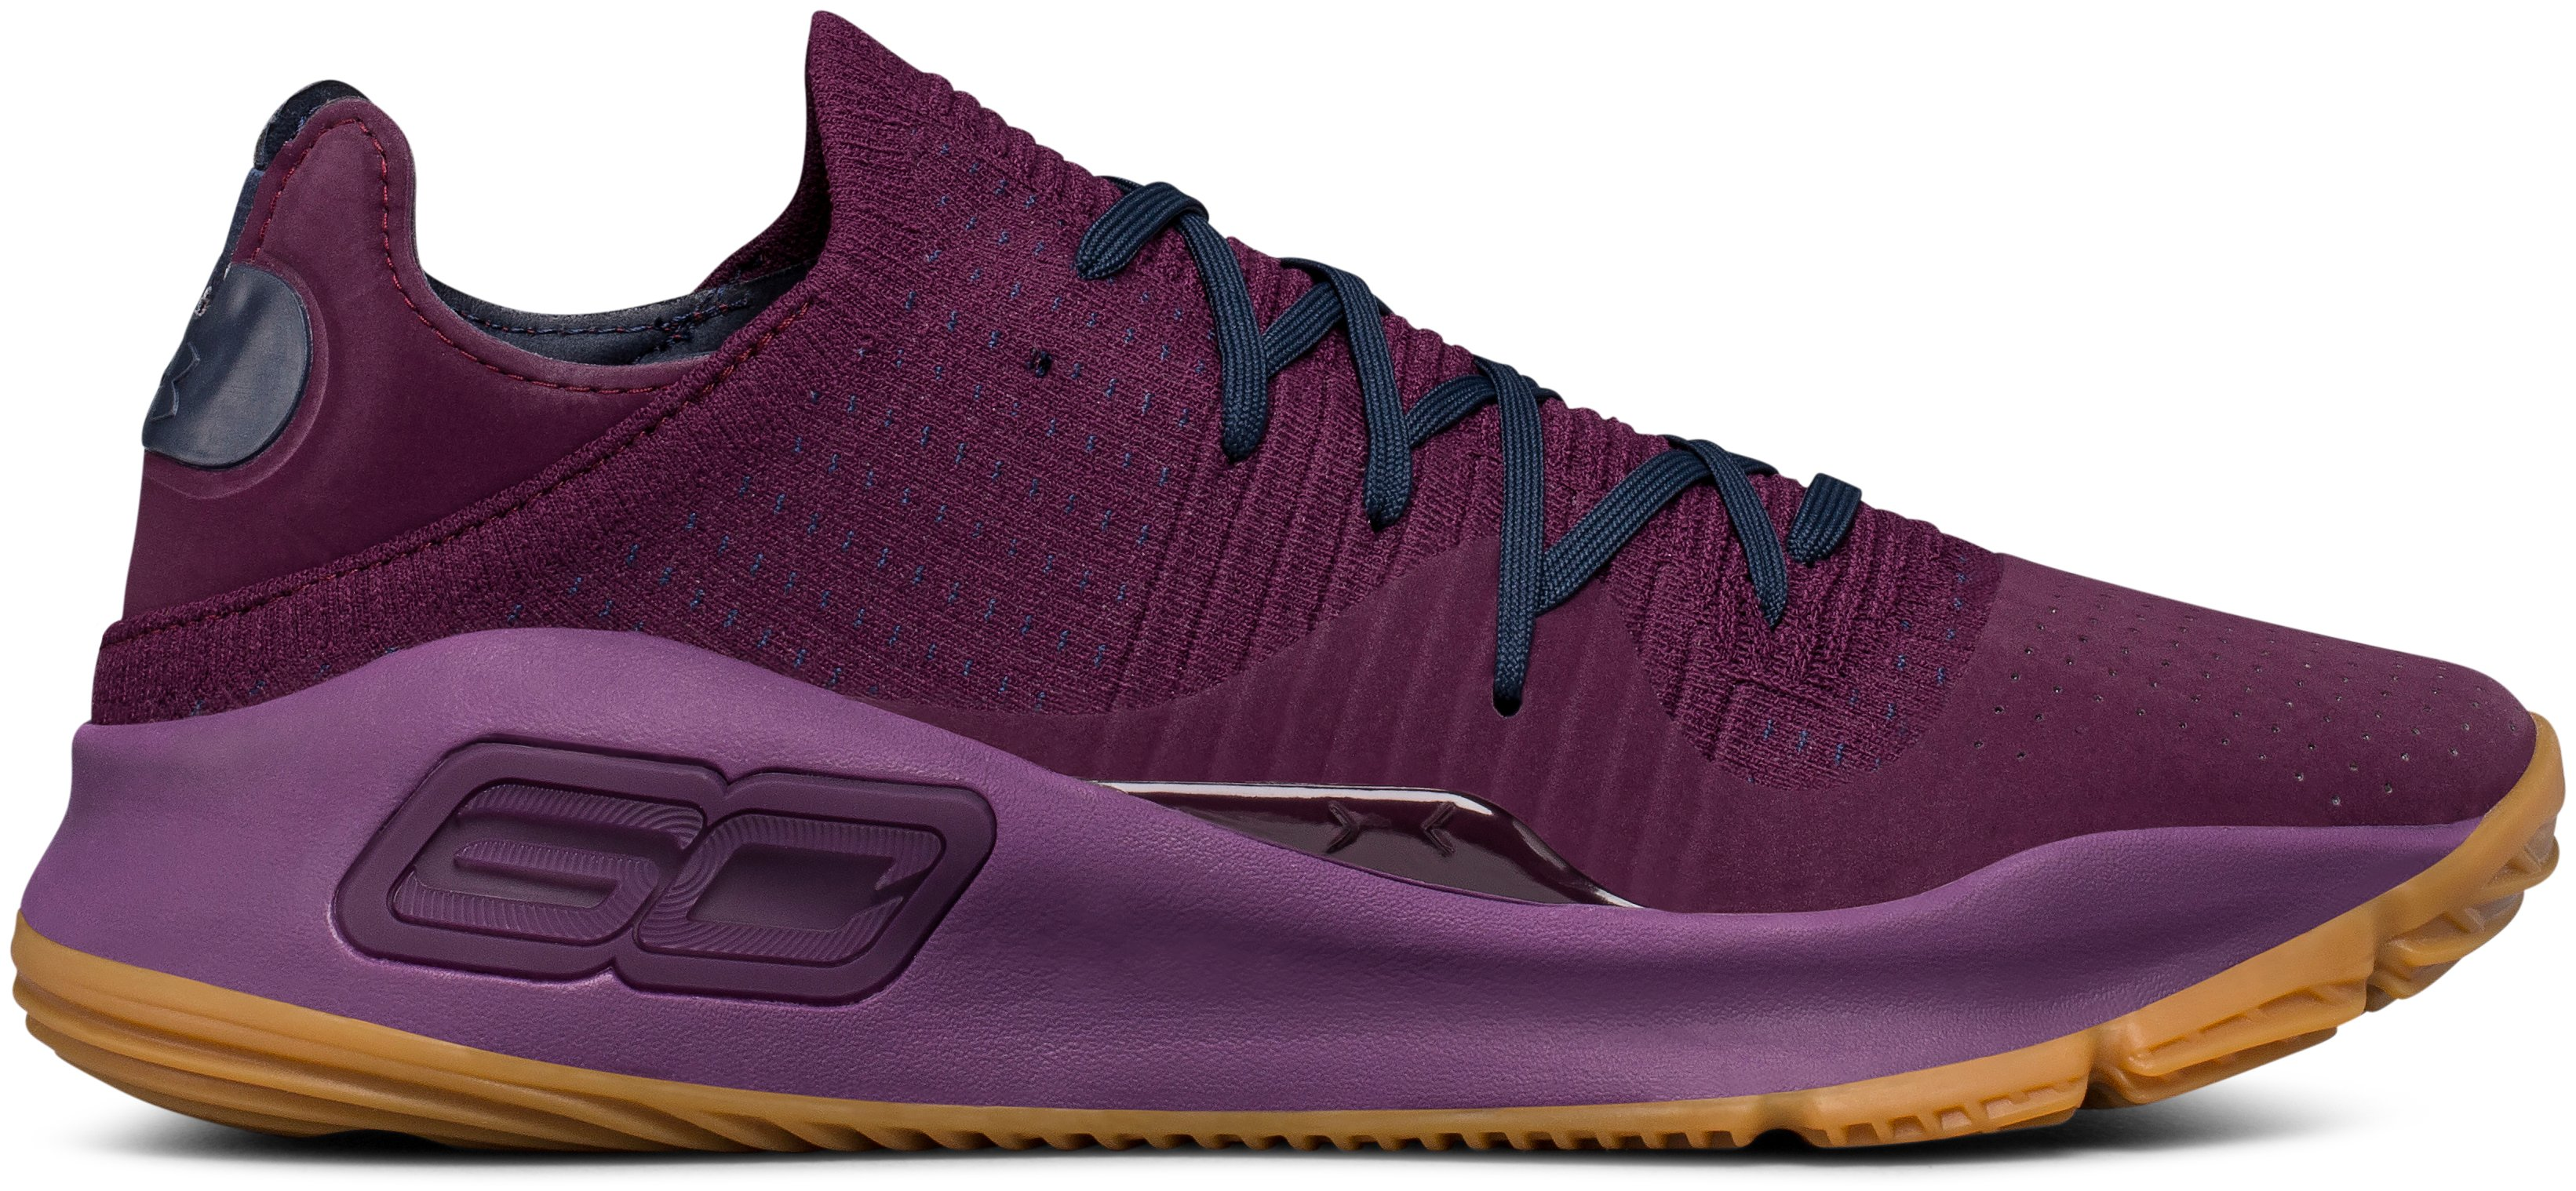 Men's UA Curry 4 Low Basketball Shoes, MERLOT, undefined